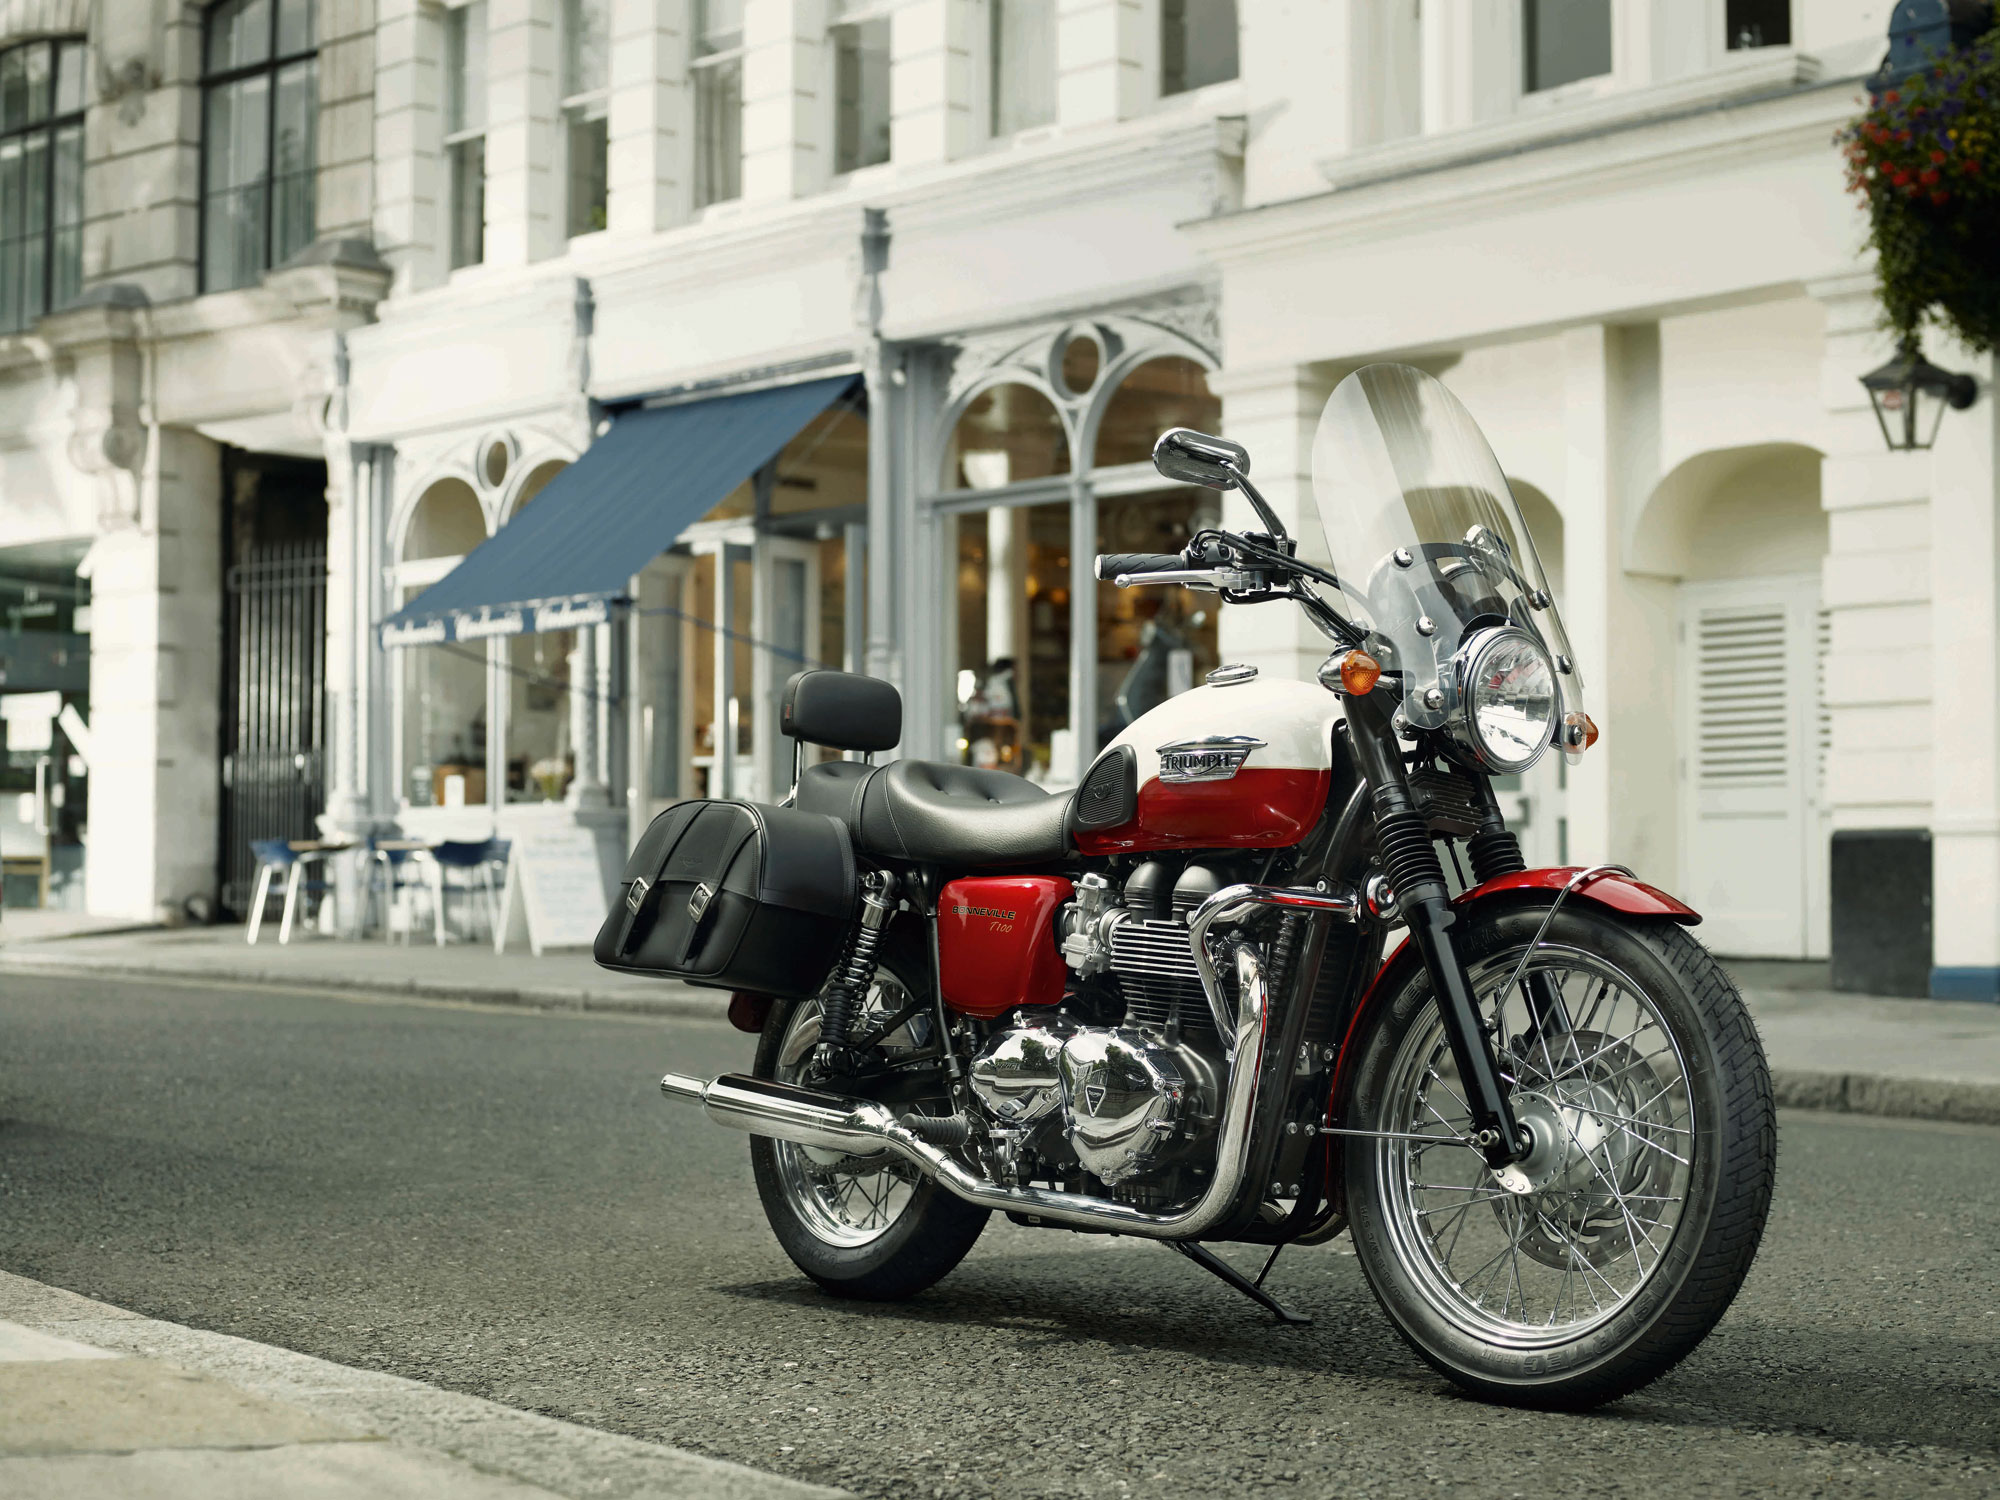 2013 Triumph Bonneville T100 | Top Speed